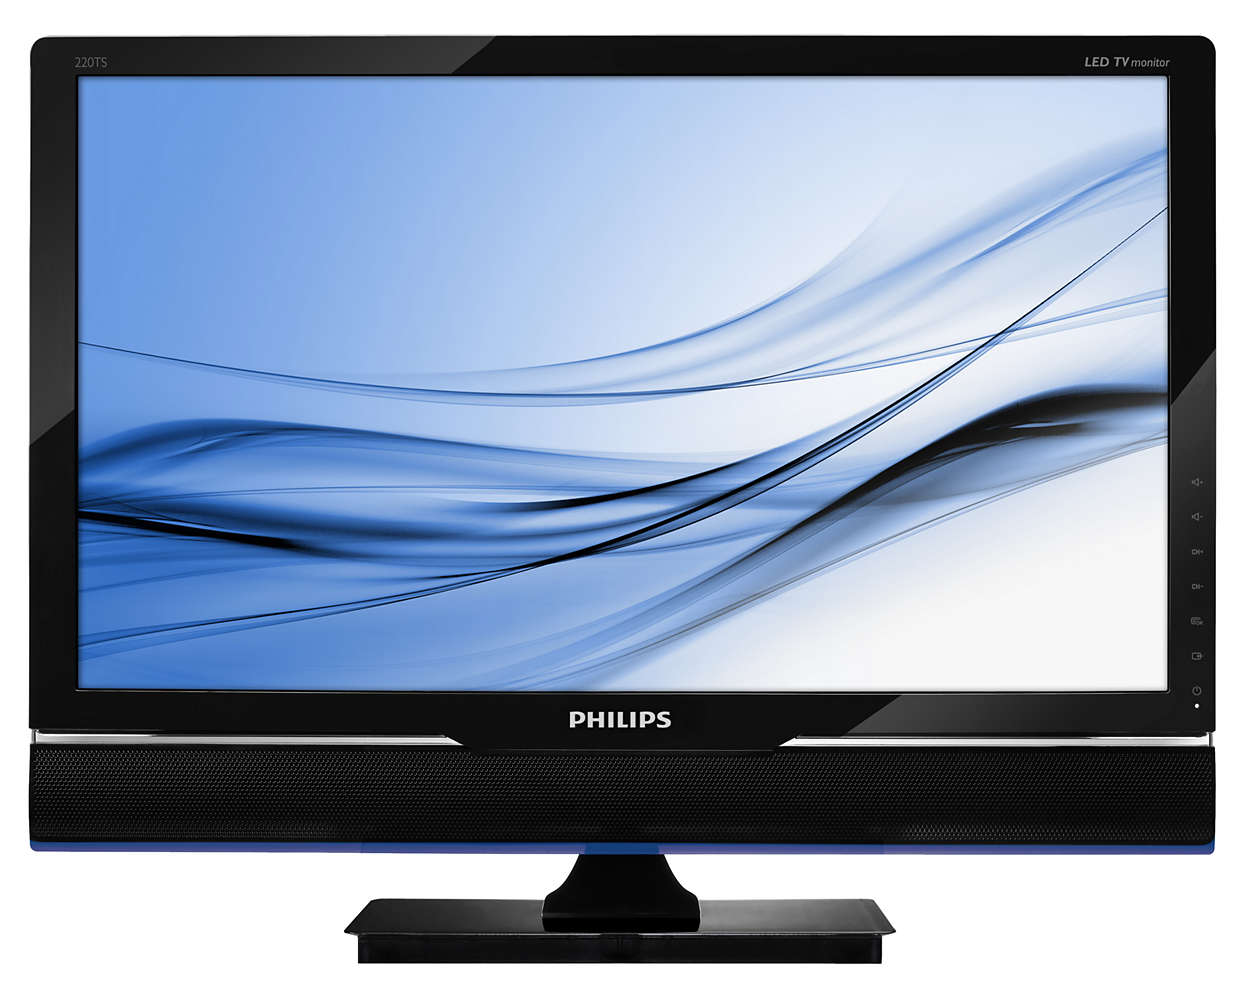 Great TV entertainment on your LED monitor